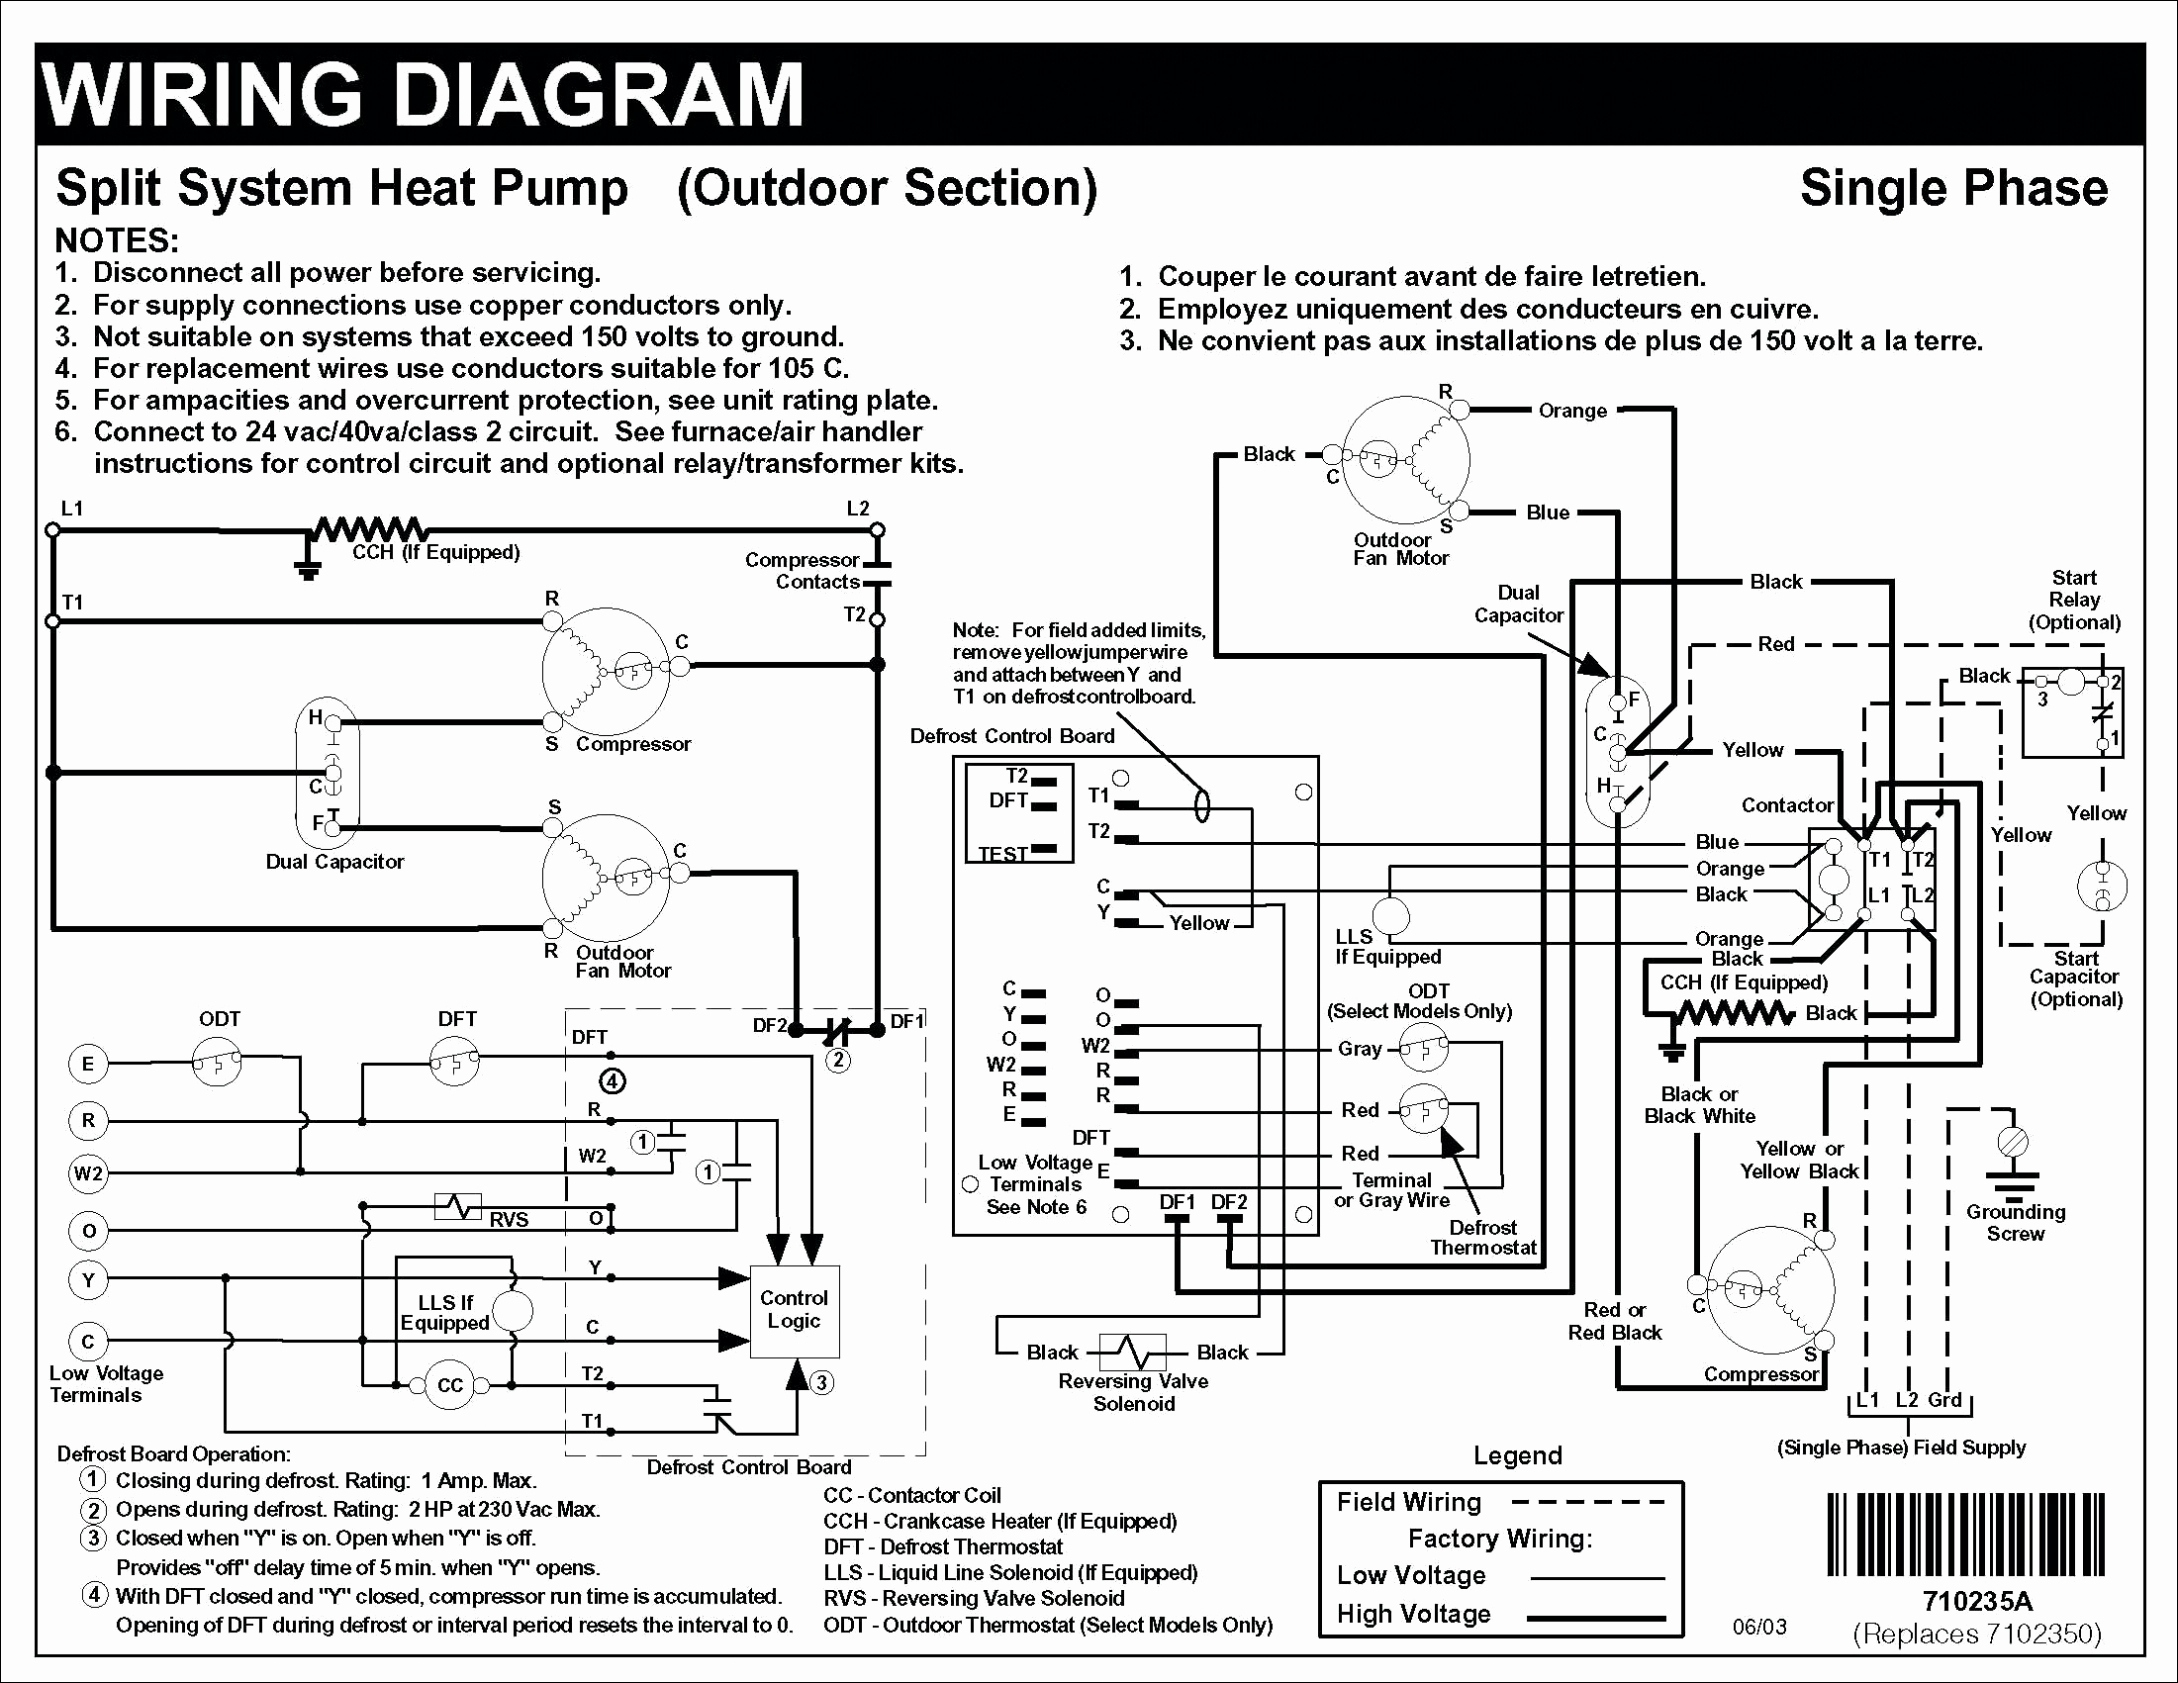 Pioneer X720Bt Wiring Diagram from 2020cadillac.com